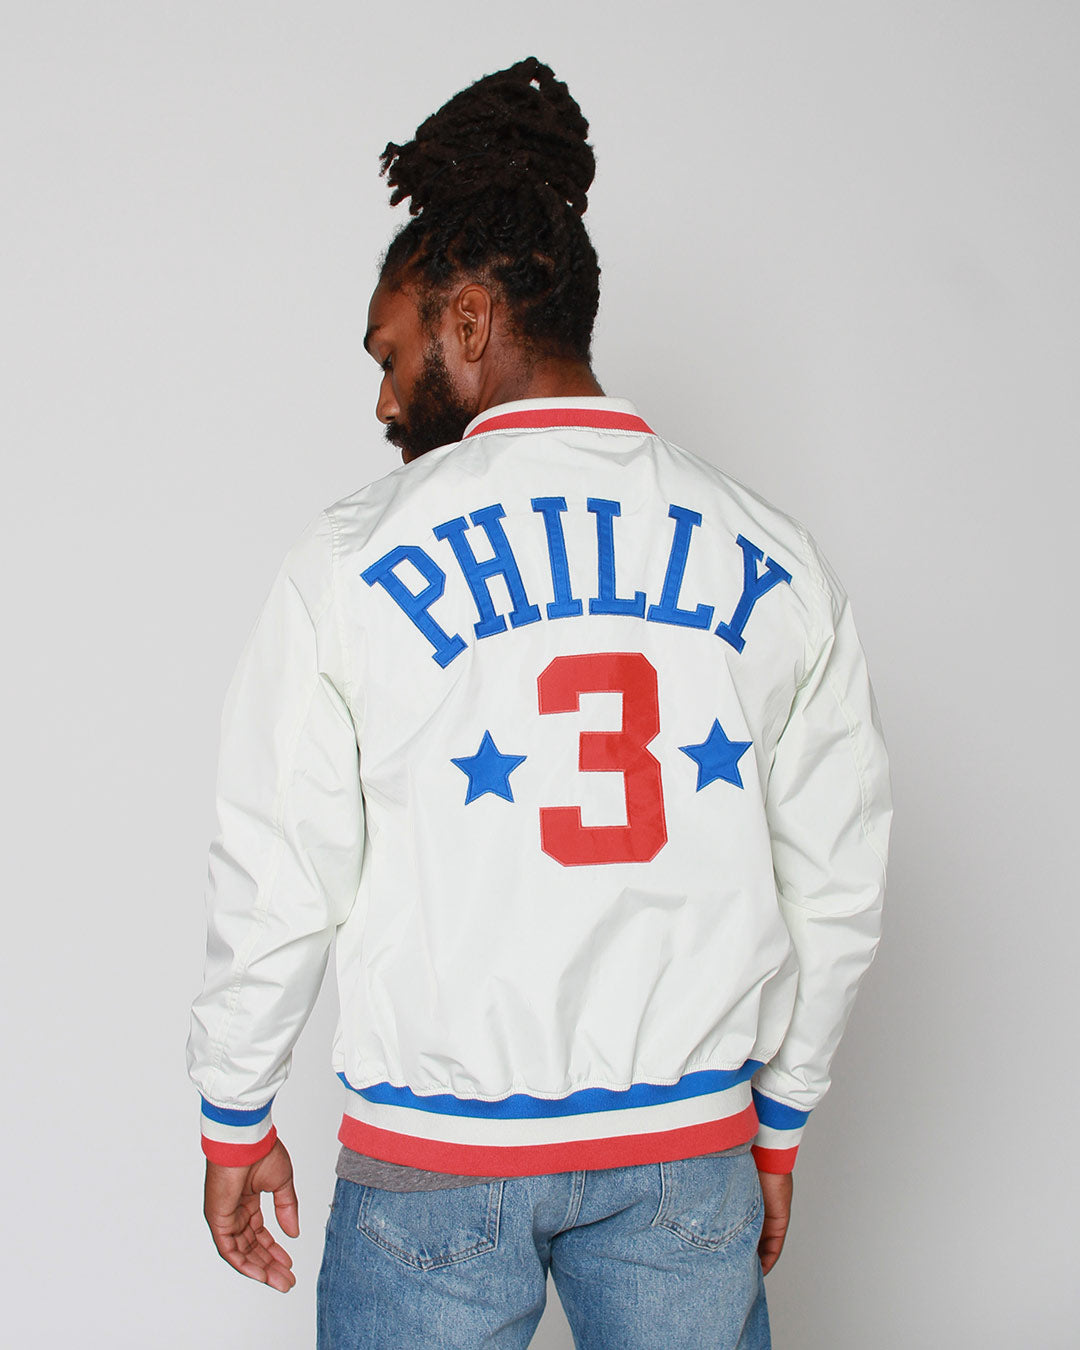 Iverson Philly #3 Stadium Jacket